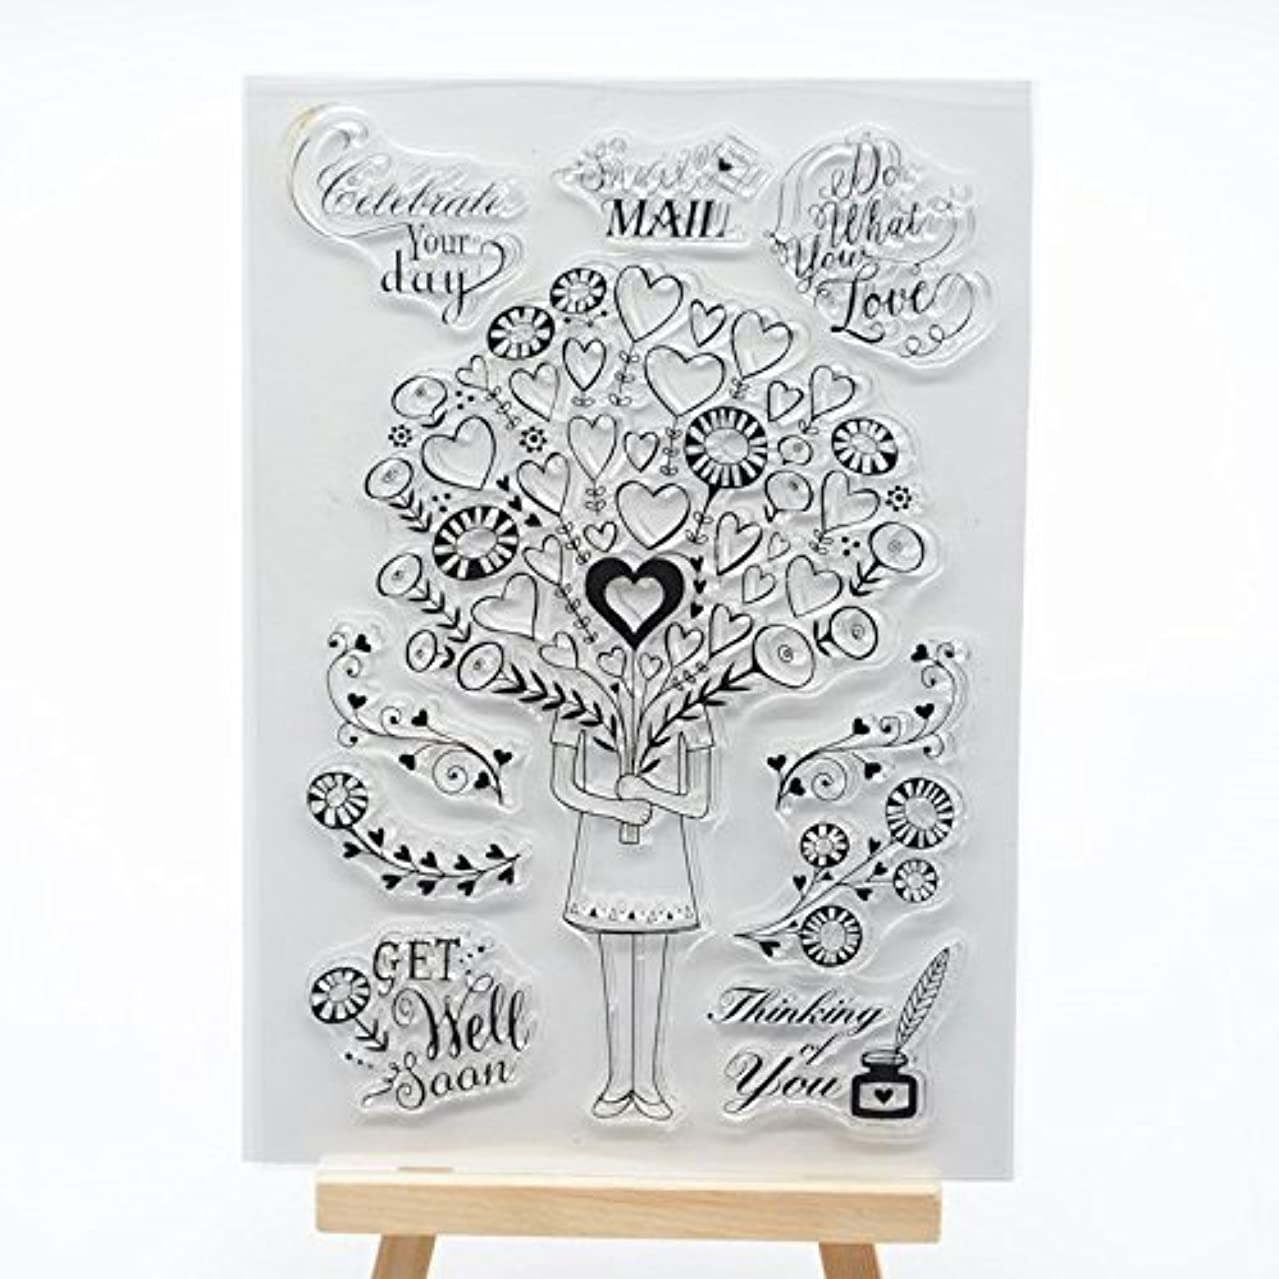 Welcome to Joyful Home 1pc Heart Girl Clear Stamp for Card Making Decoration and Scrapbooking